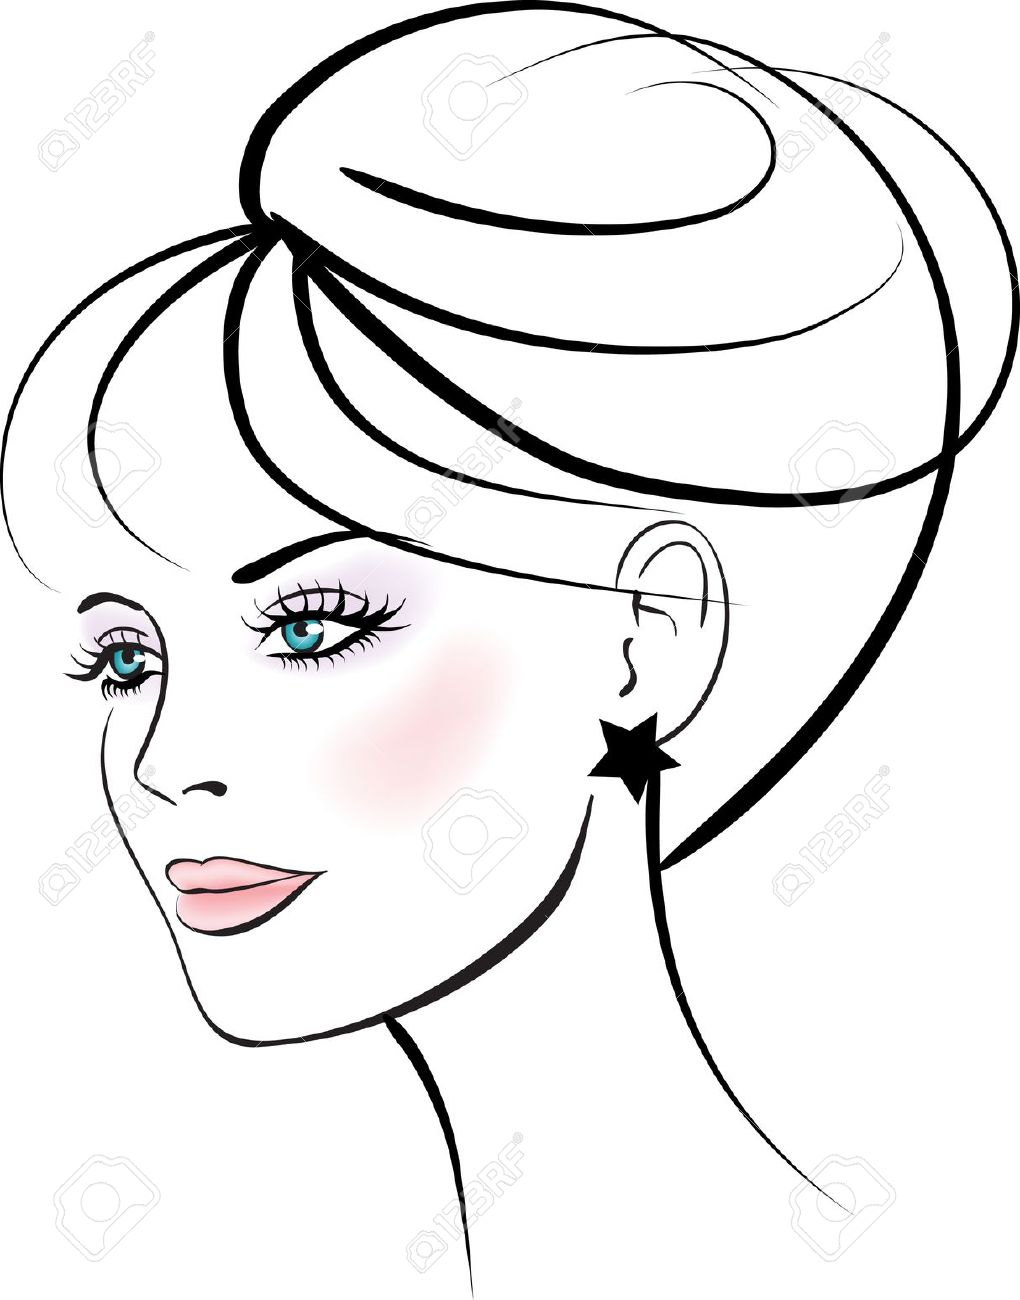 How To Draw A Silhouette Of A Woman\'s Face.